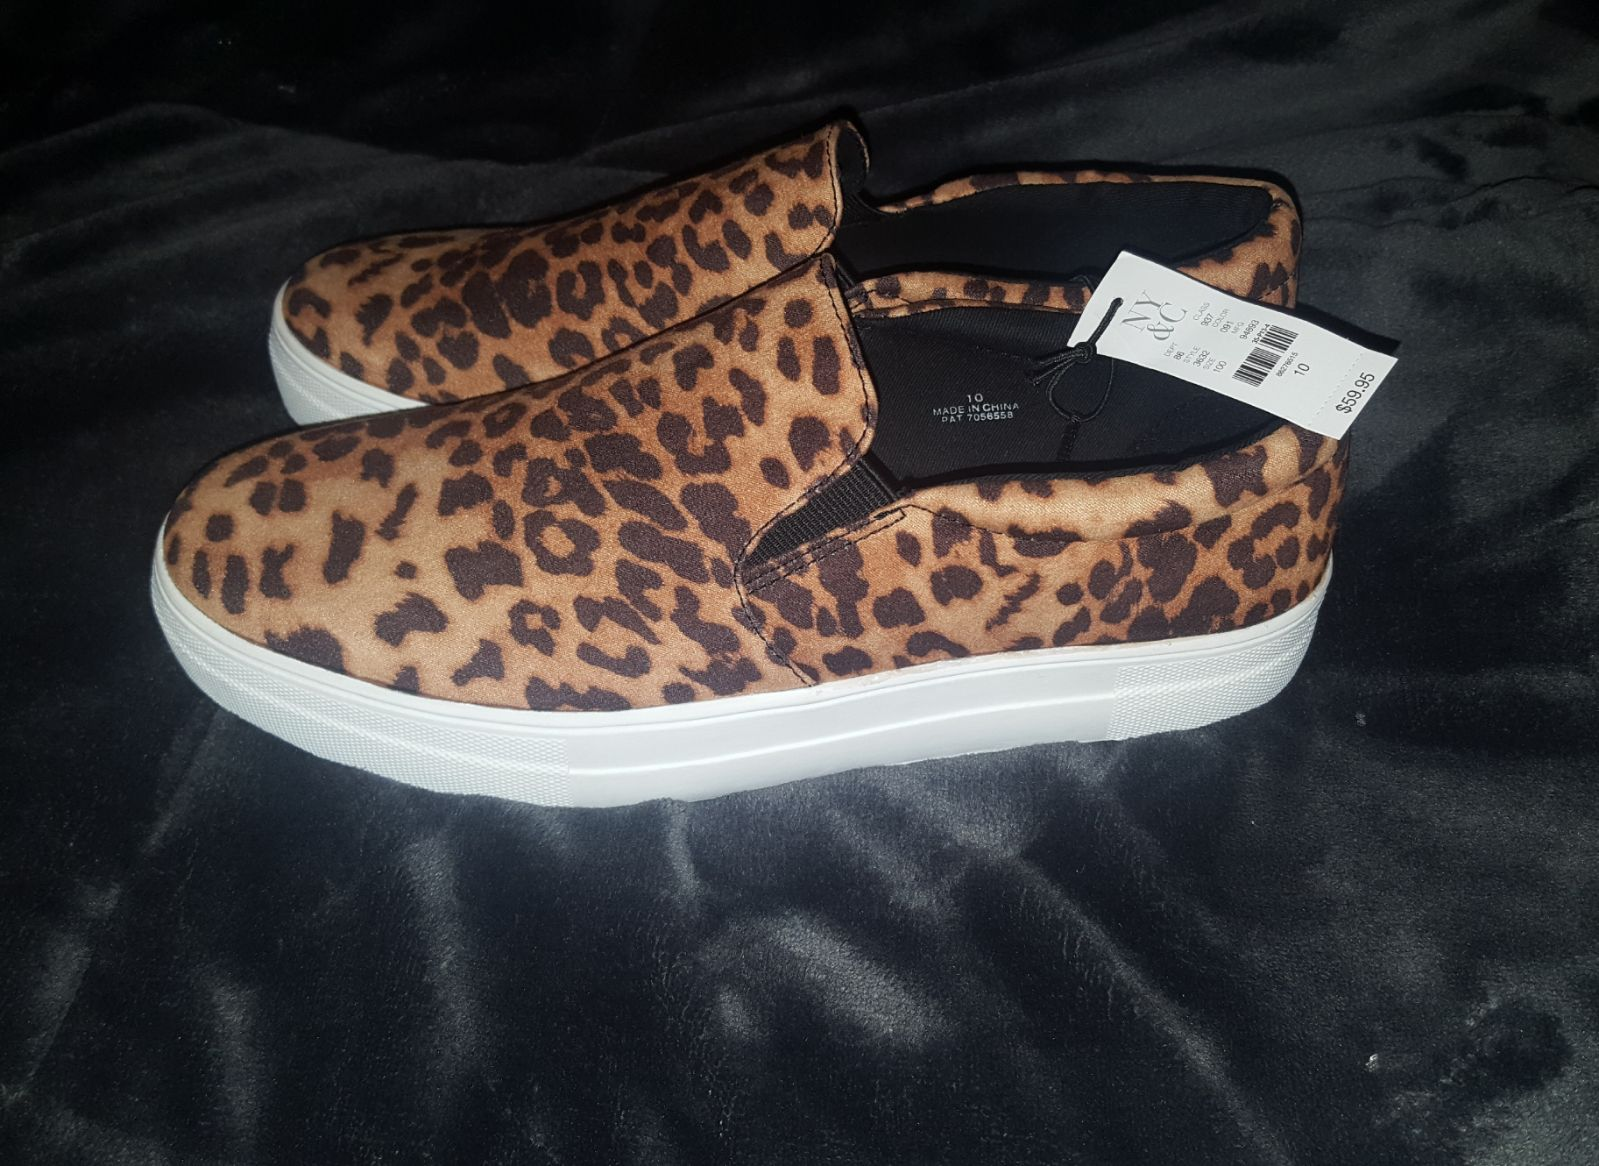 Nwt leopard shoes ny&c size 10